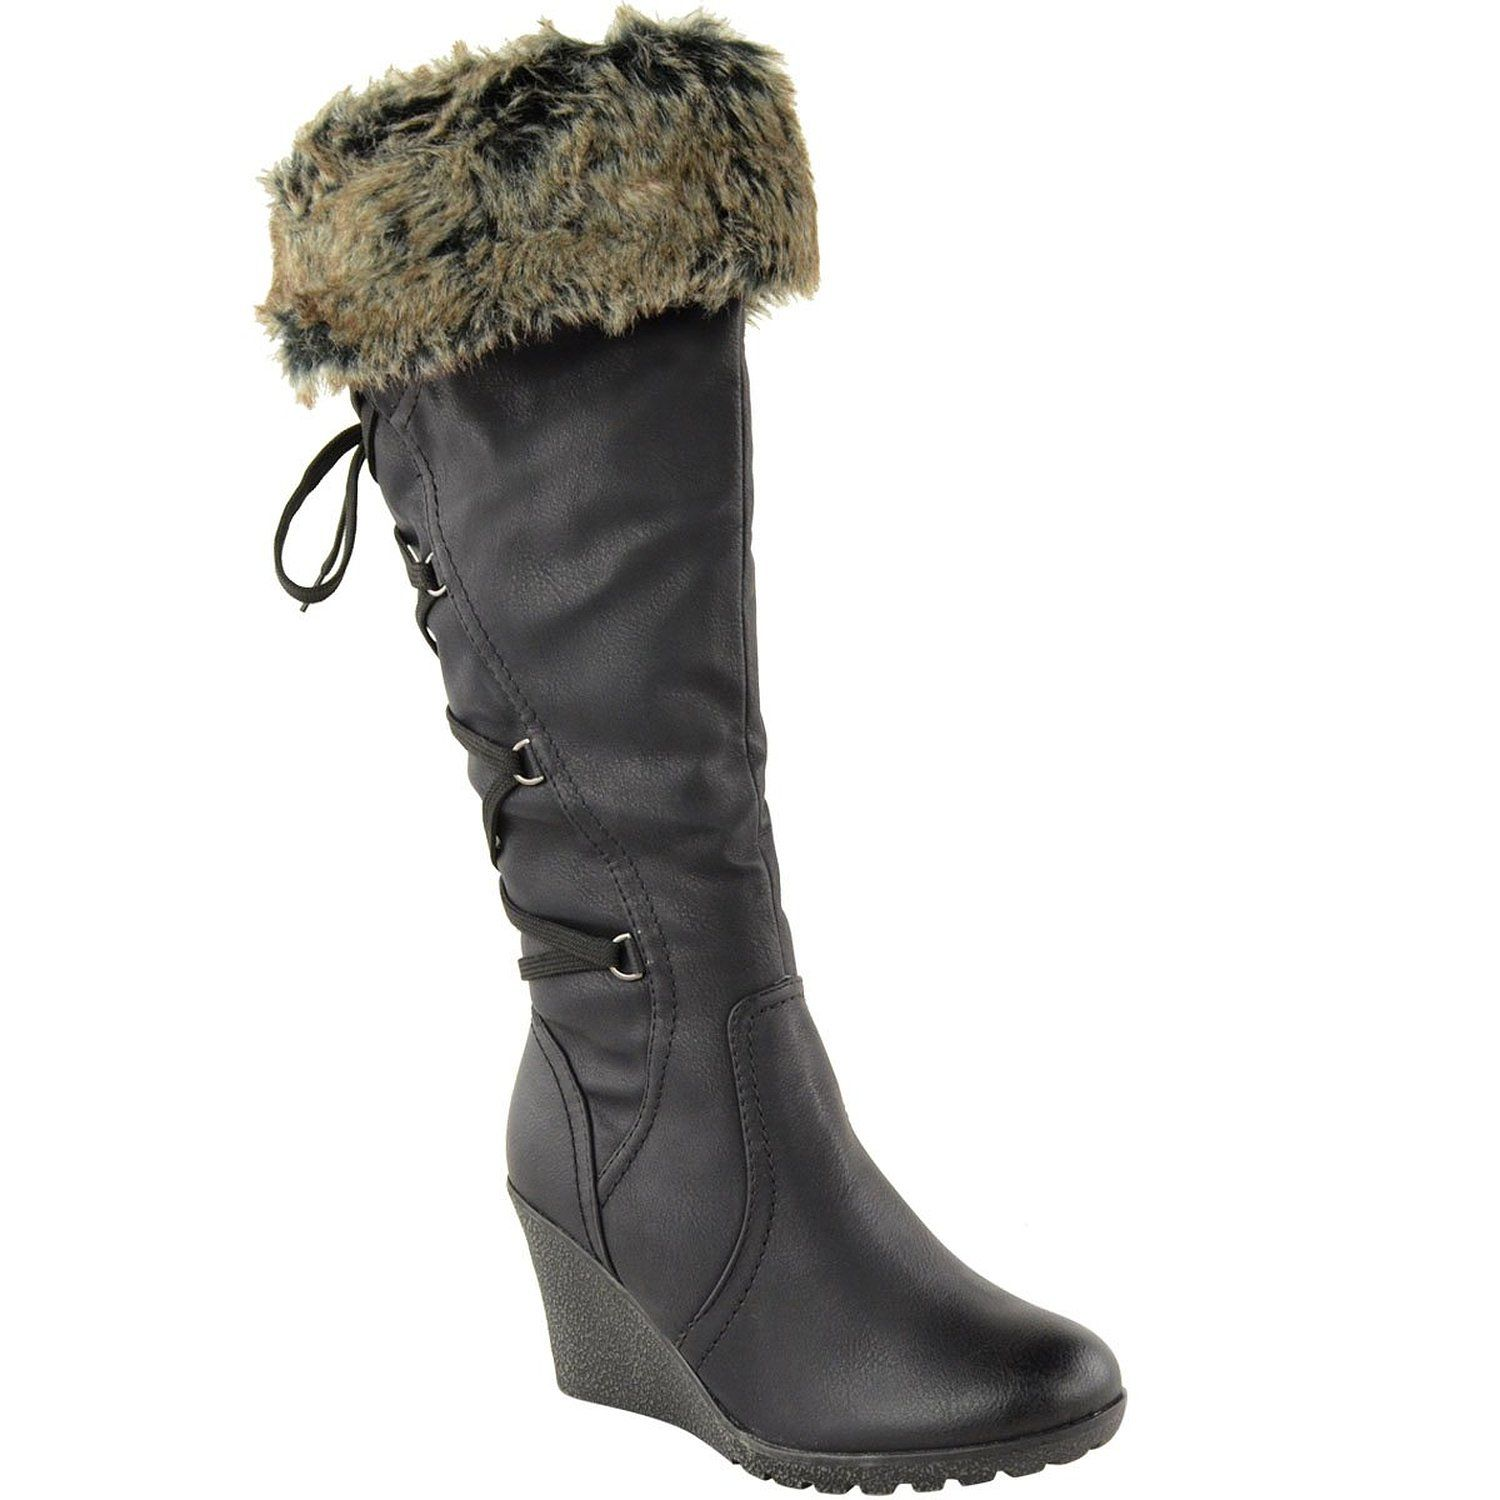 Womens Suede Faux Fur Mid Calf Warm Rain Winter Bootie Snow Boots Black